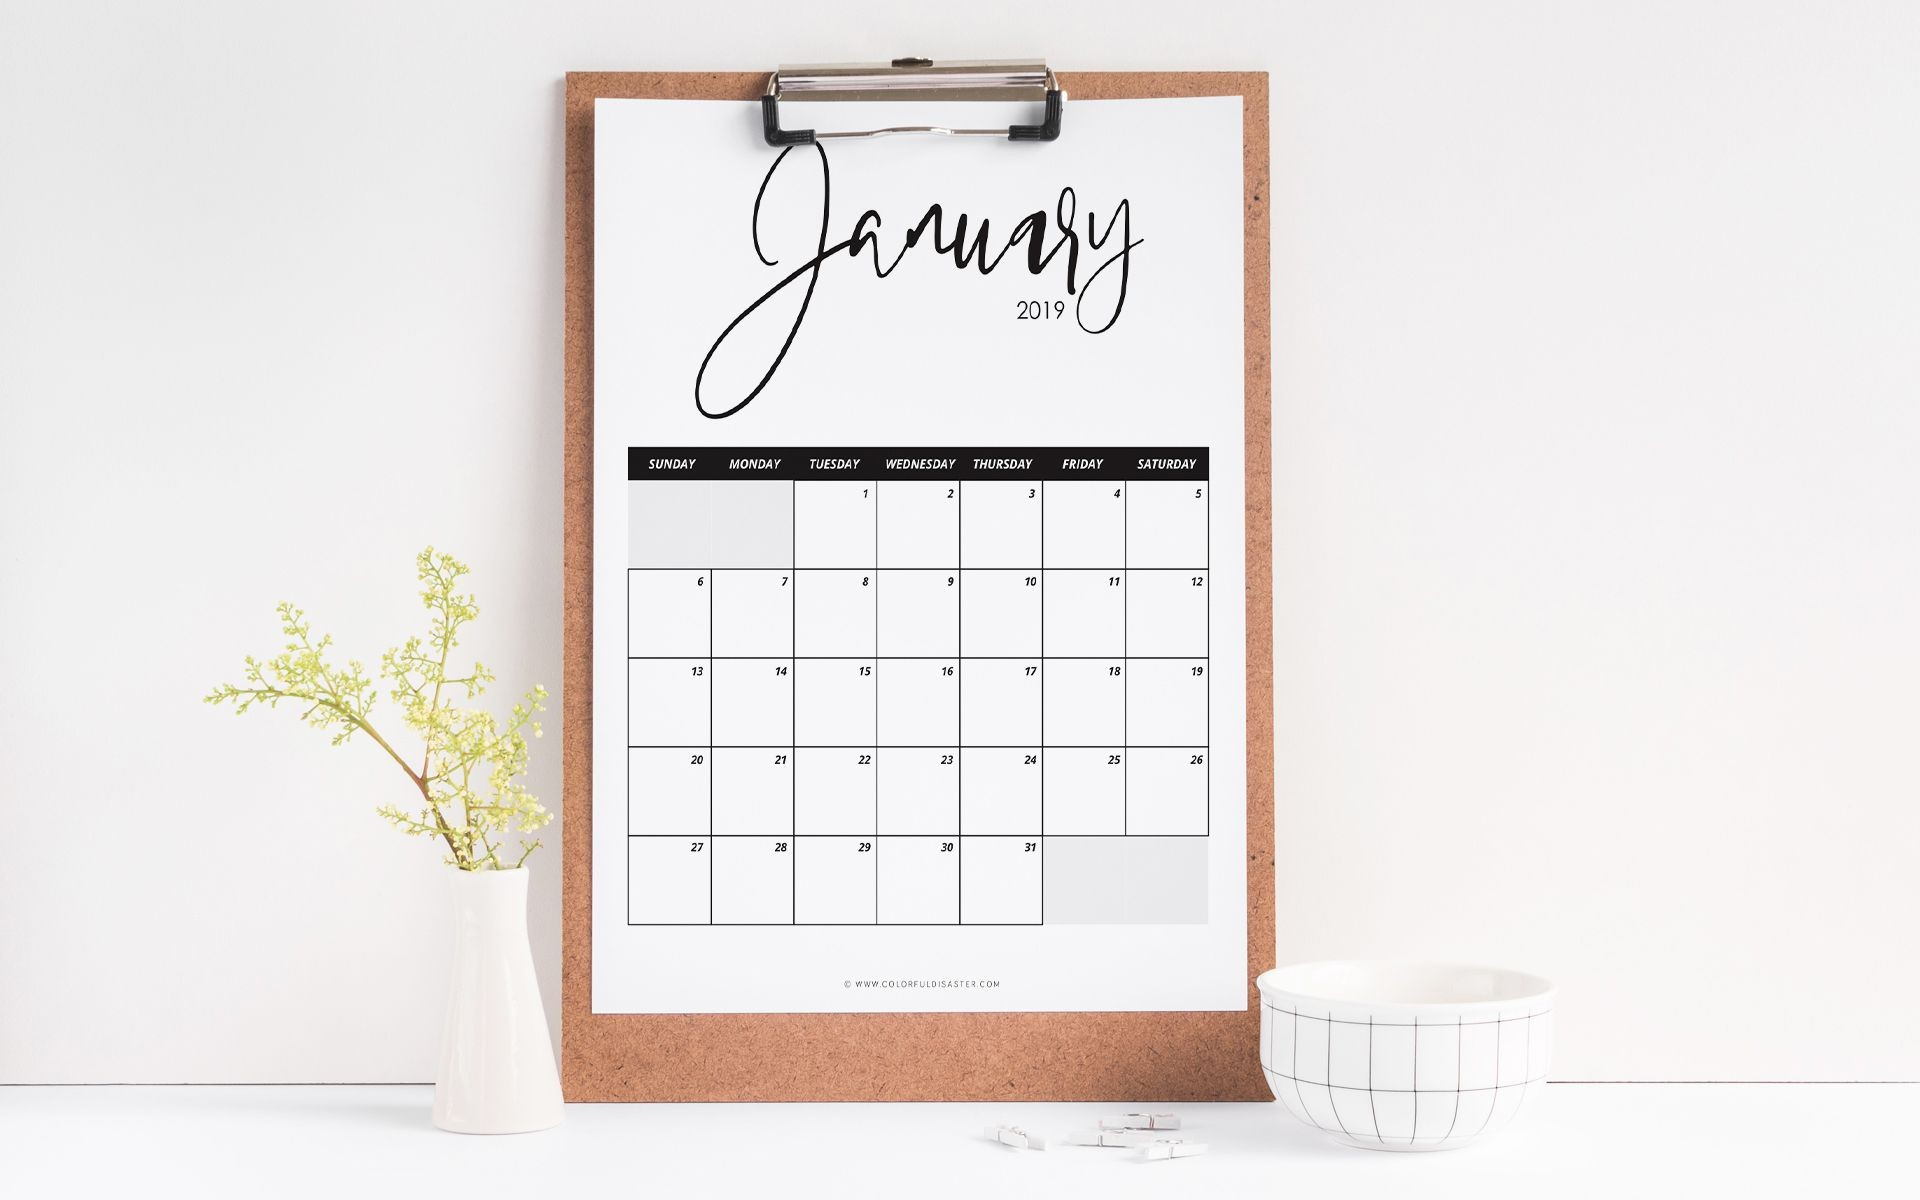 Empty Calendar March 2019 Más Recientemente Liberado 10 Stylish Free Printable Calendars for 2019 Of Empty Calendar March 2019 Más Recientemente Liberado March 2019 Calendar Wallpaper Desktop March Calendar Calenda2019